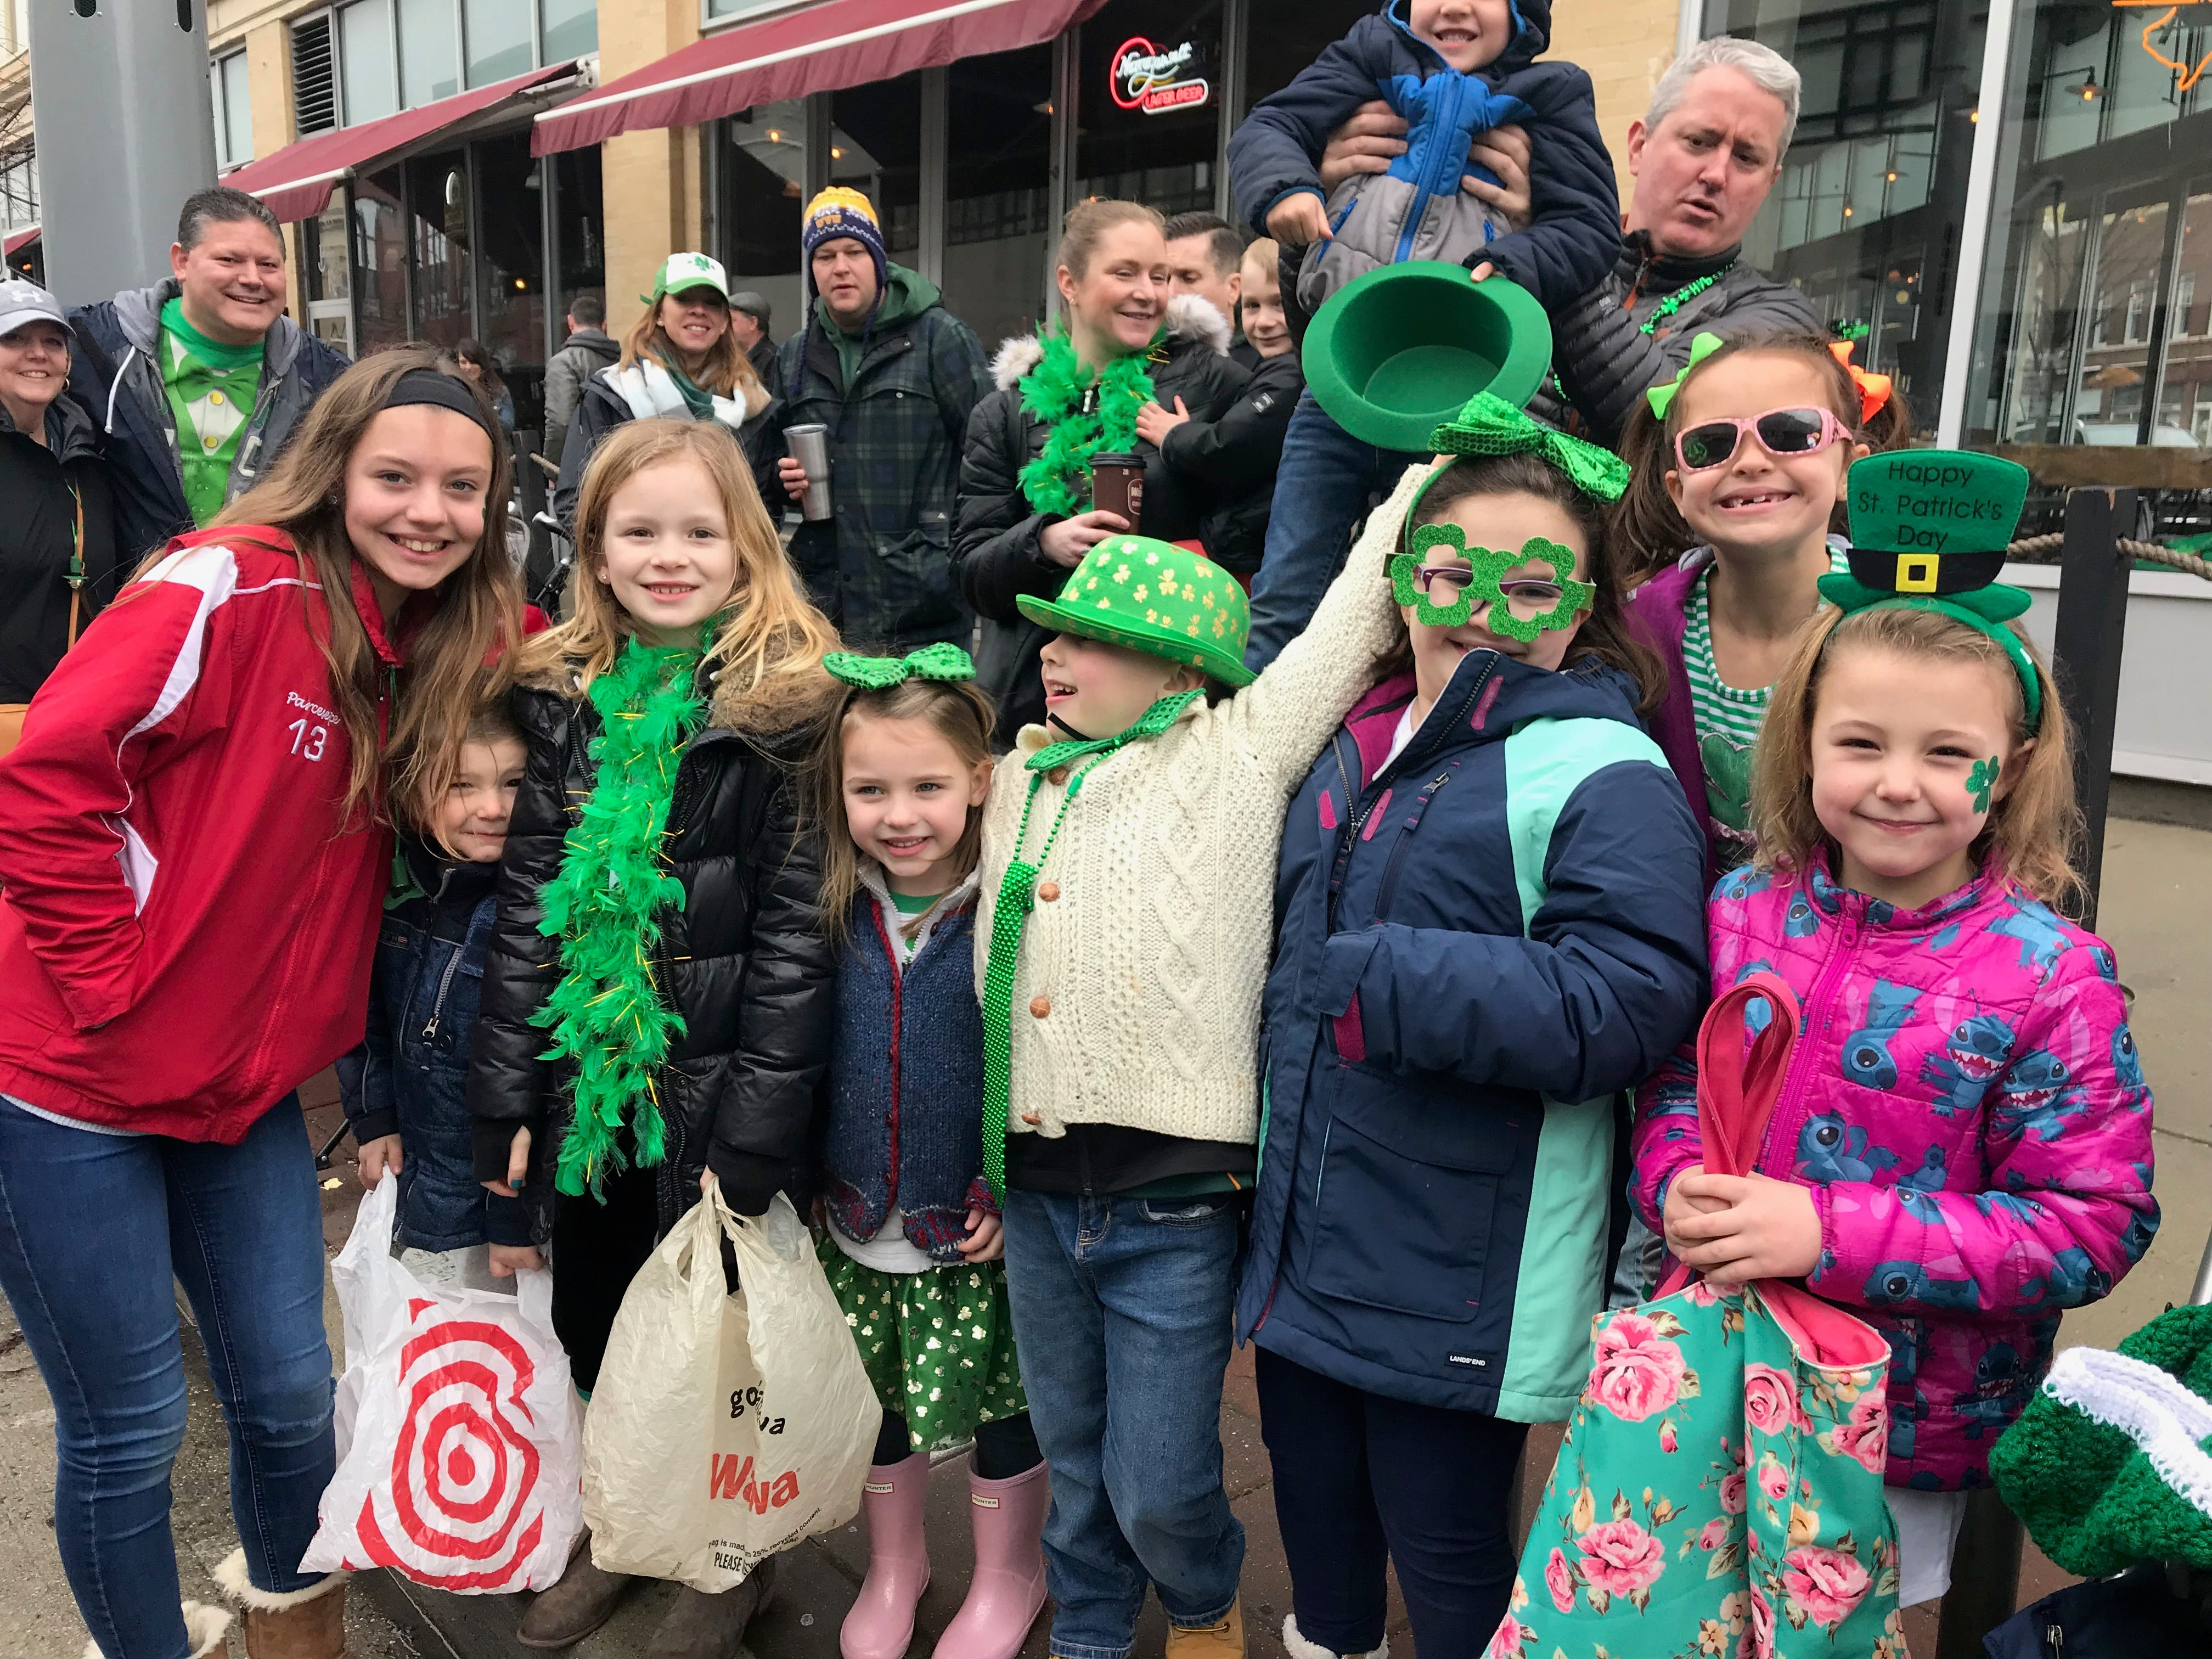 Spectators line Cookman Avenue for the Asbury Park St. Patrick's Day Parade on March 10, 2019.